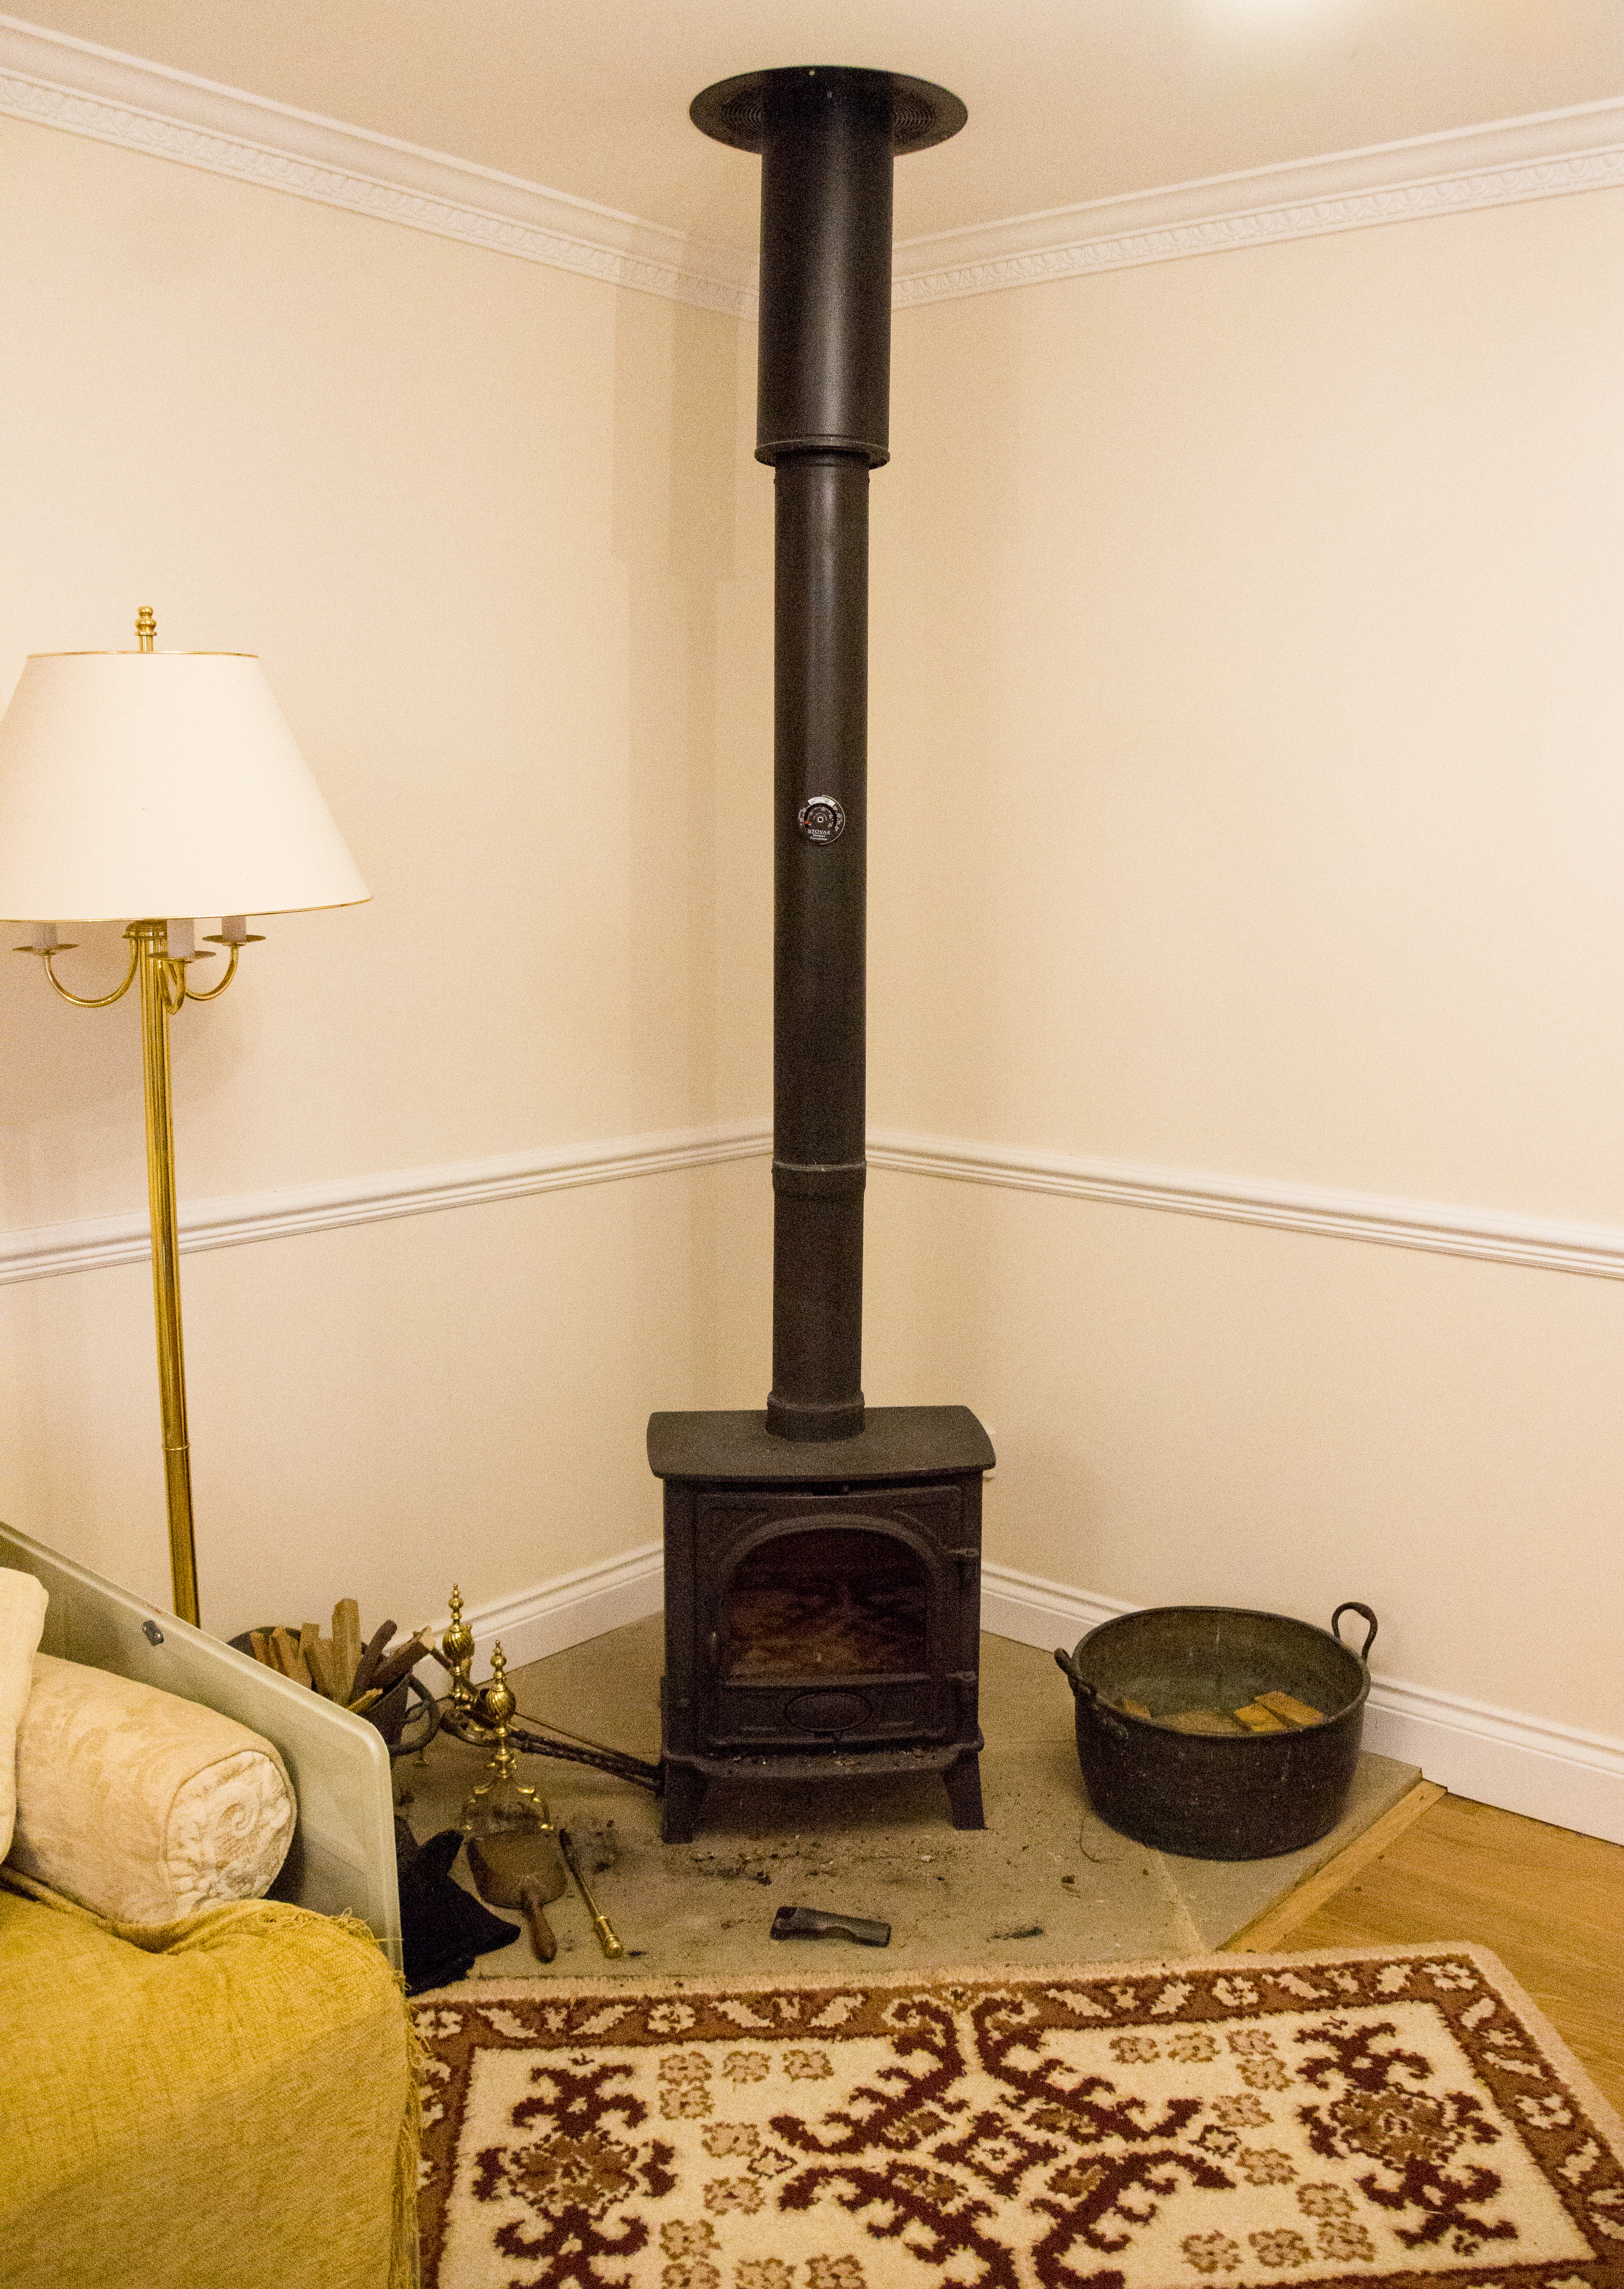 Wood burner installed in the corner of the room